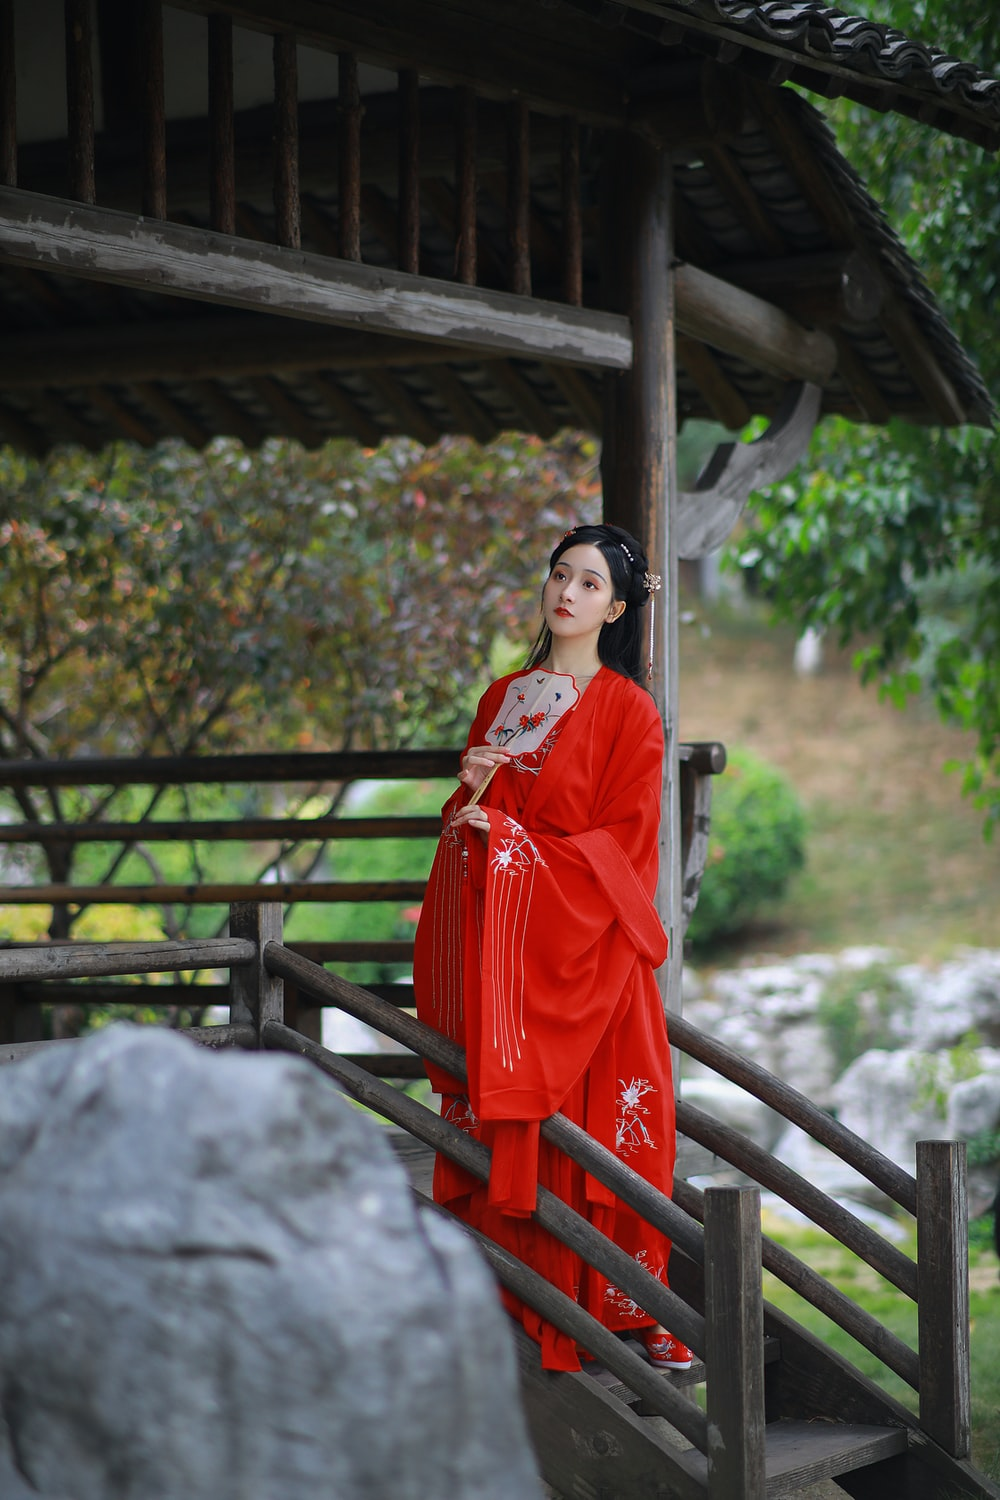 woman in red and white sari standing near brown wooden gazebo during daytime